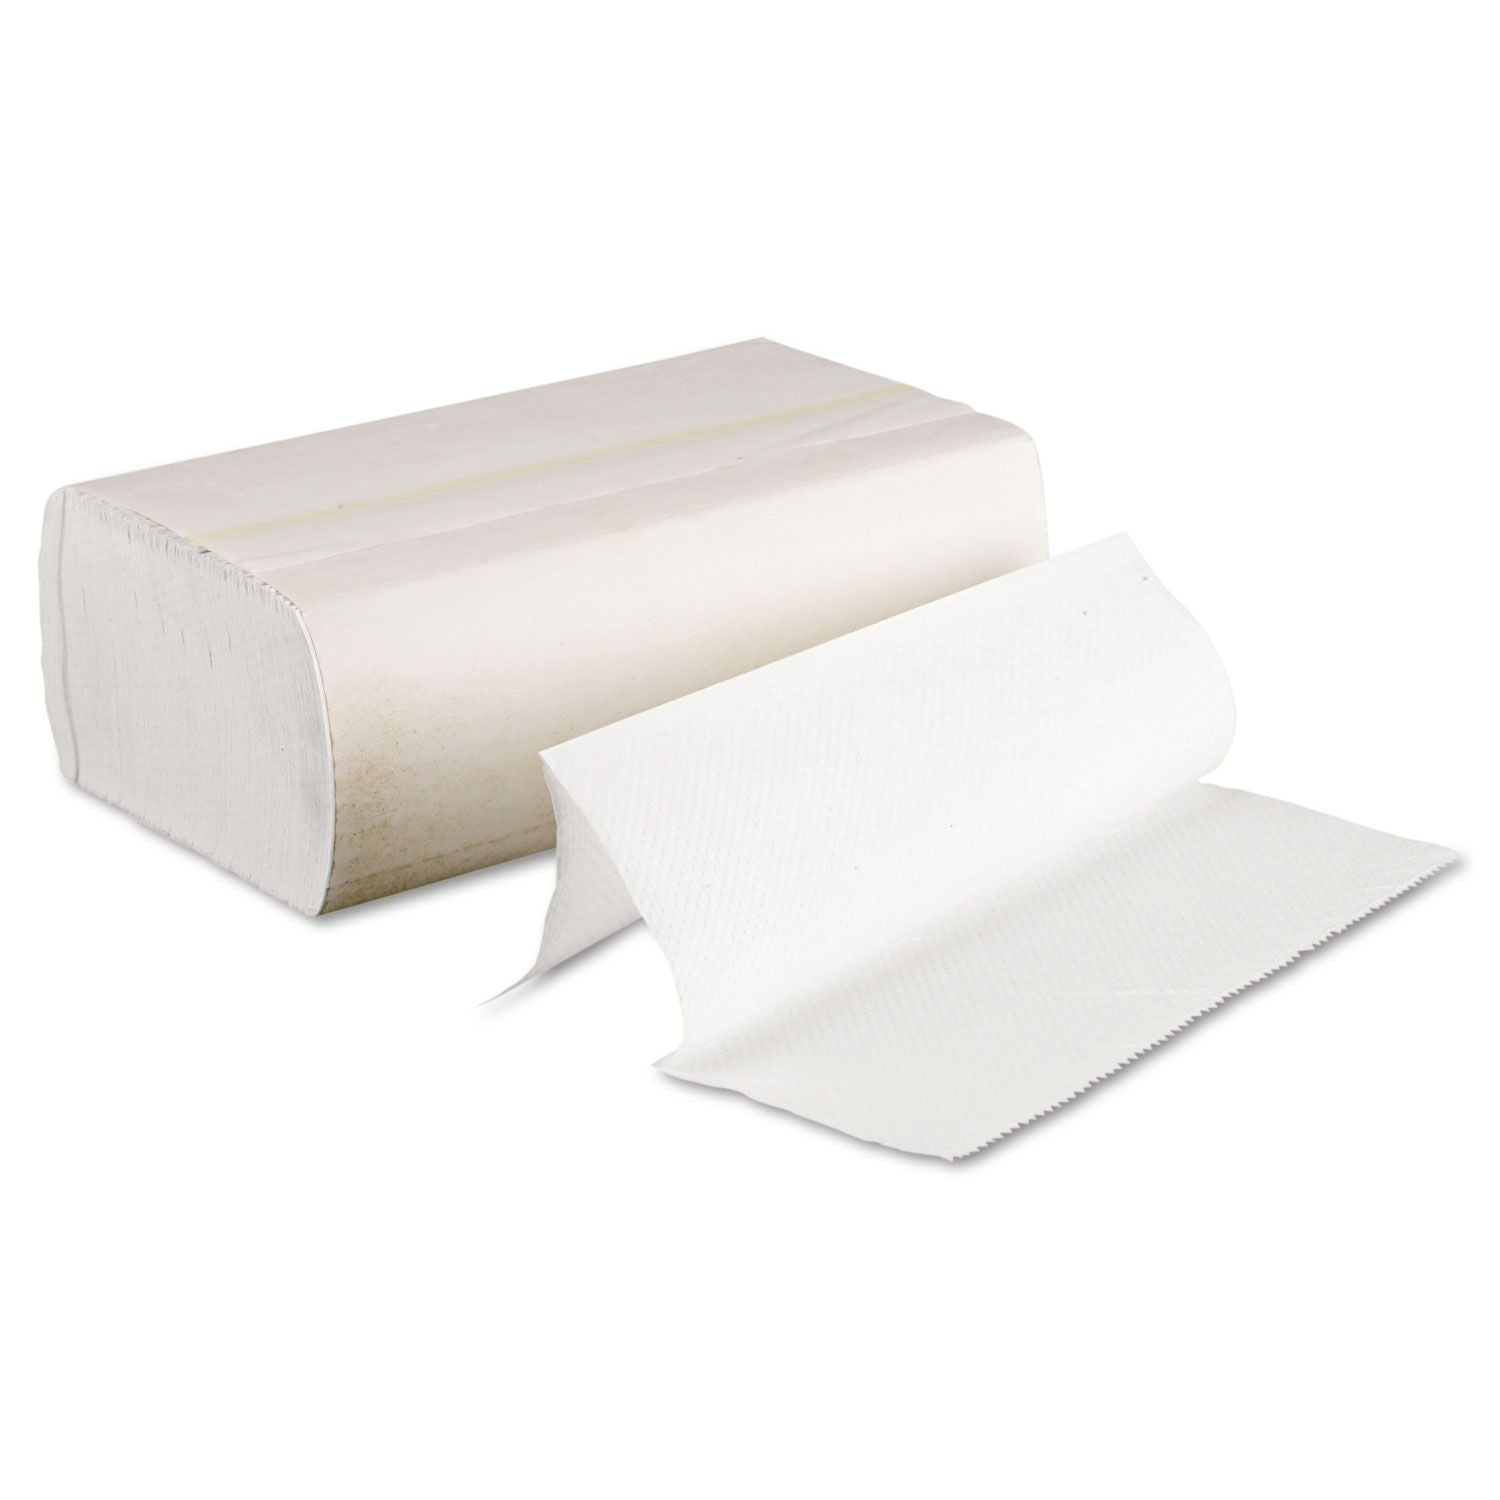 White Multi-Fold Paper Towel